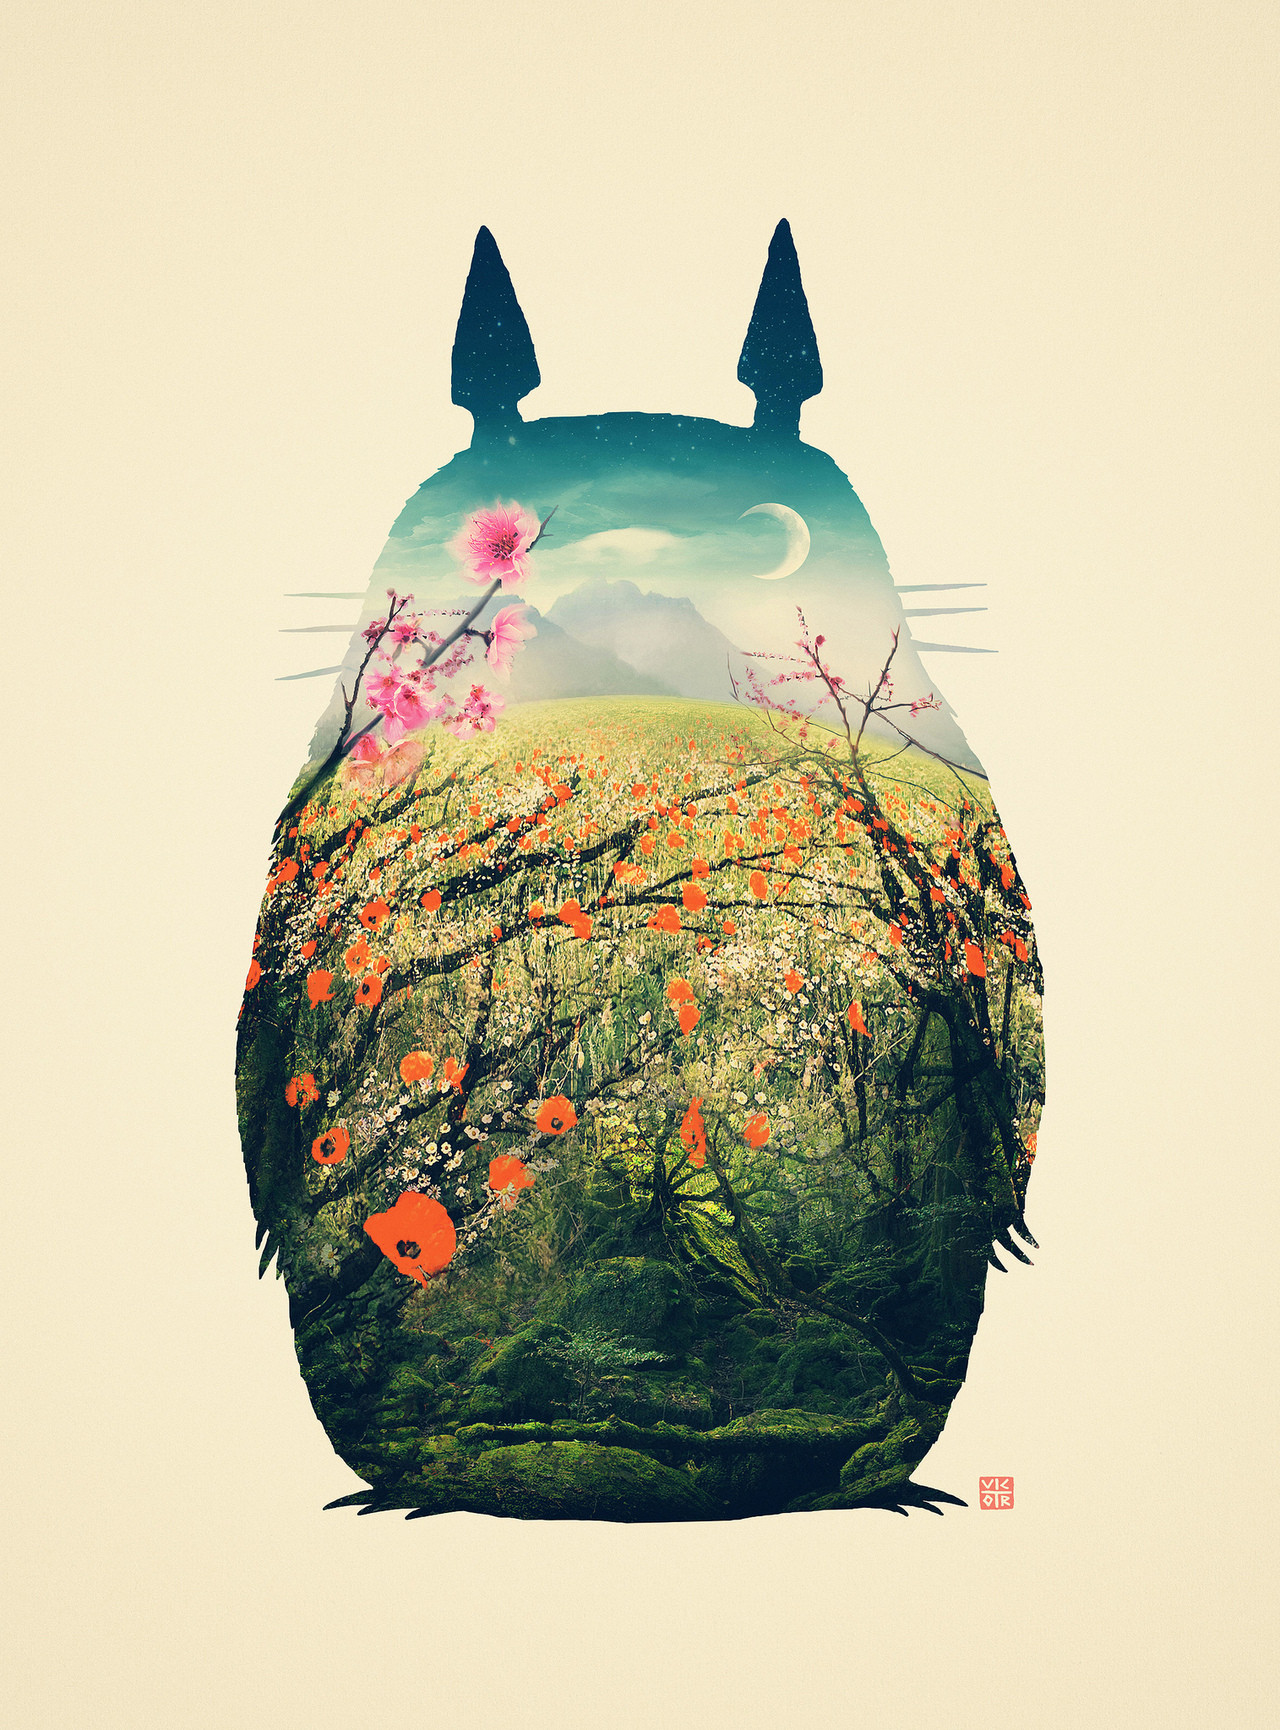 Iron Throne Silhouette My Neighbor Totoro Art...